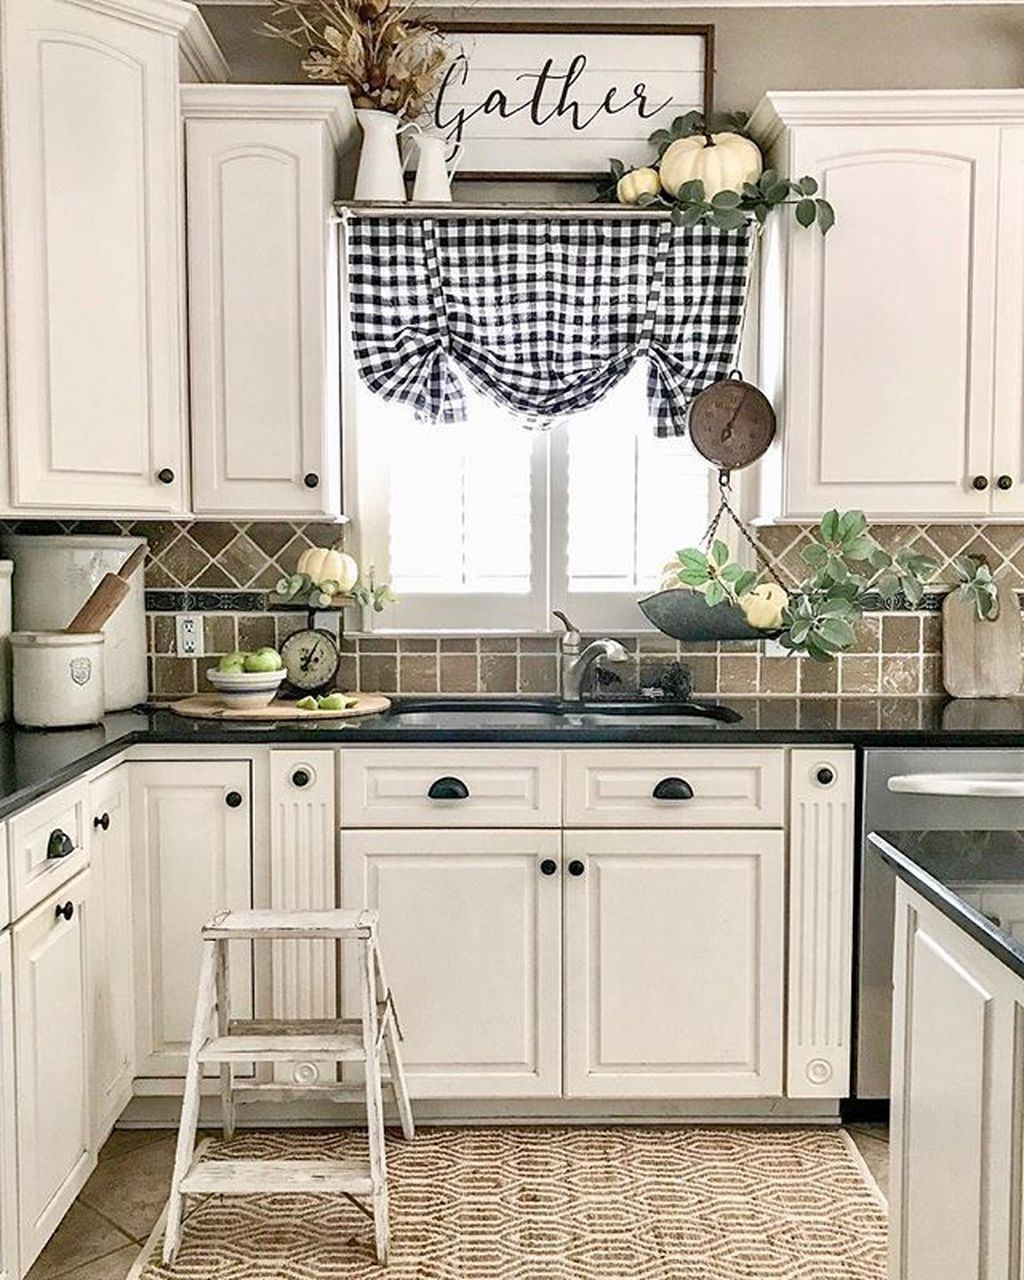 Kitchen Cabinet Christmas Decorating Ideas: 38 Comfy Farmhouse Kitchen Decor Ideas